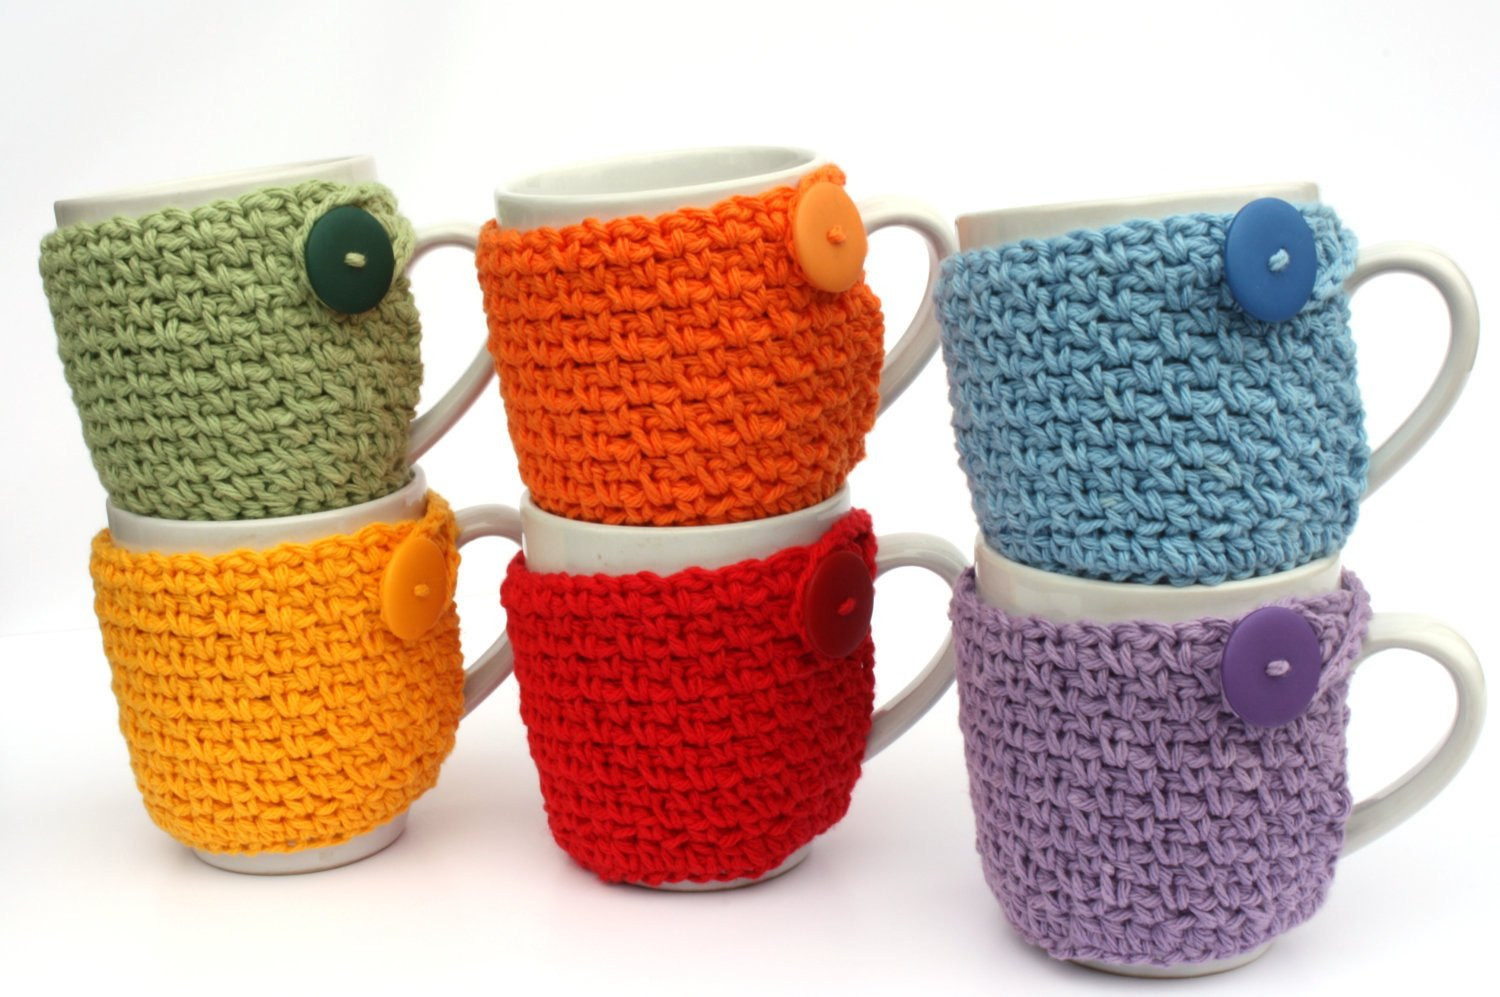 Crochet Coffee Cup Cozy Lovely Coffee Cup Cozy Crochet Cup Sleeve You Pick the by Sweetbriers Of Crochet Coffee Cup Cozy Awesome Crochet Coffee Cozy Amy Latta Creations